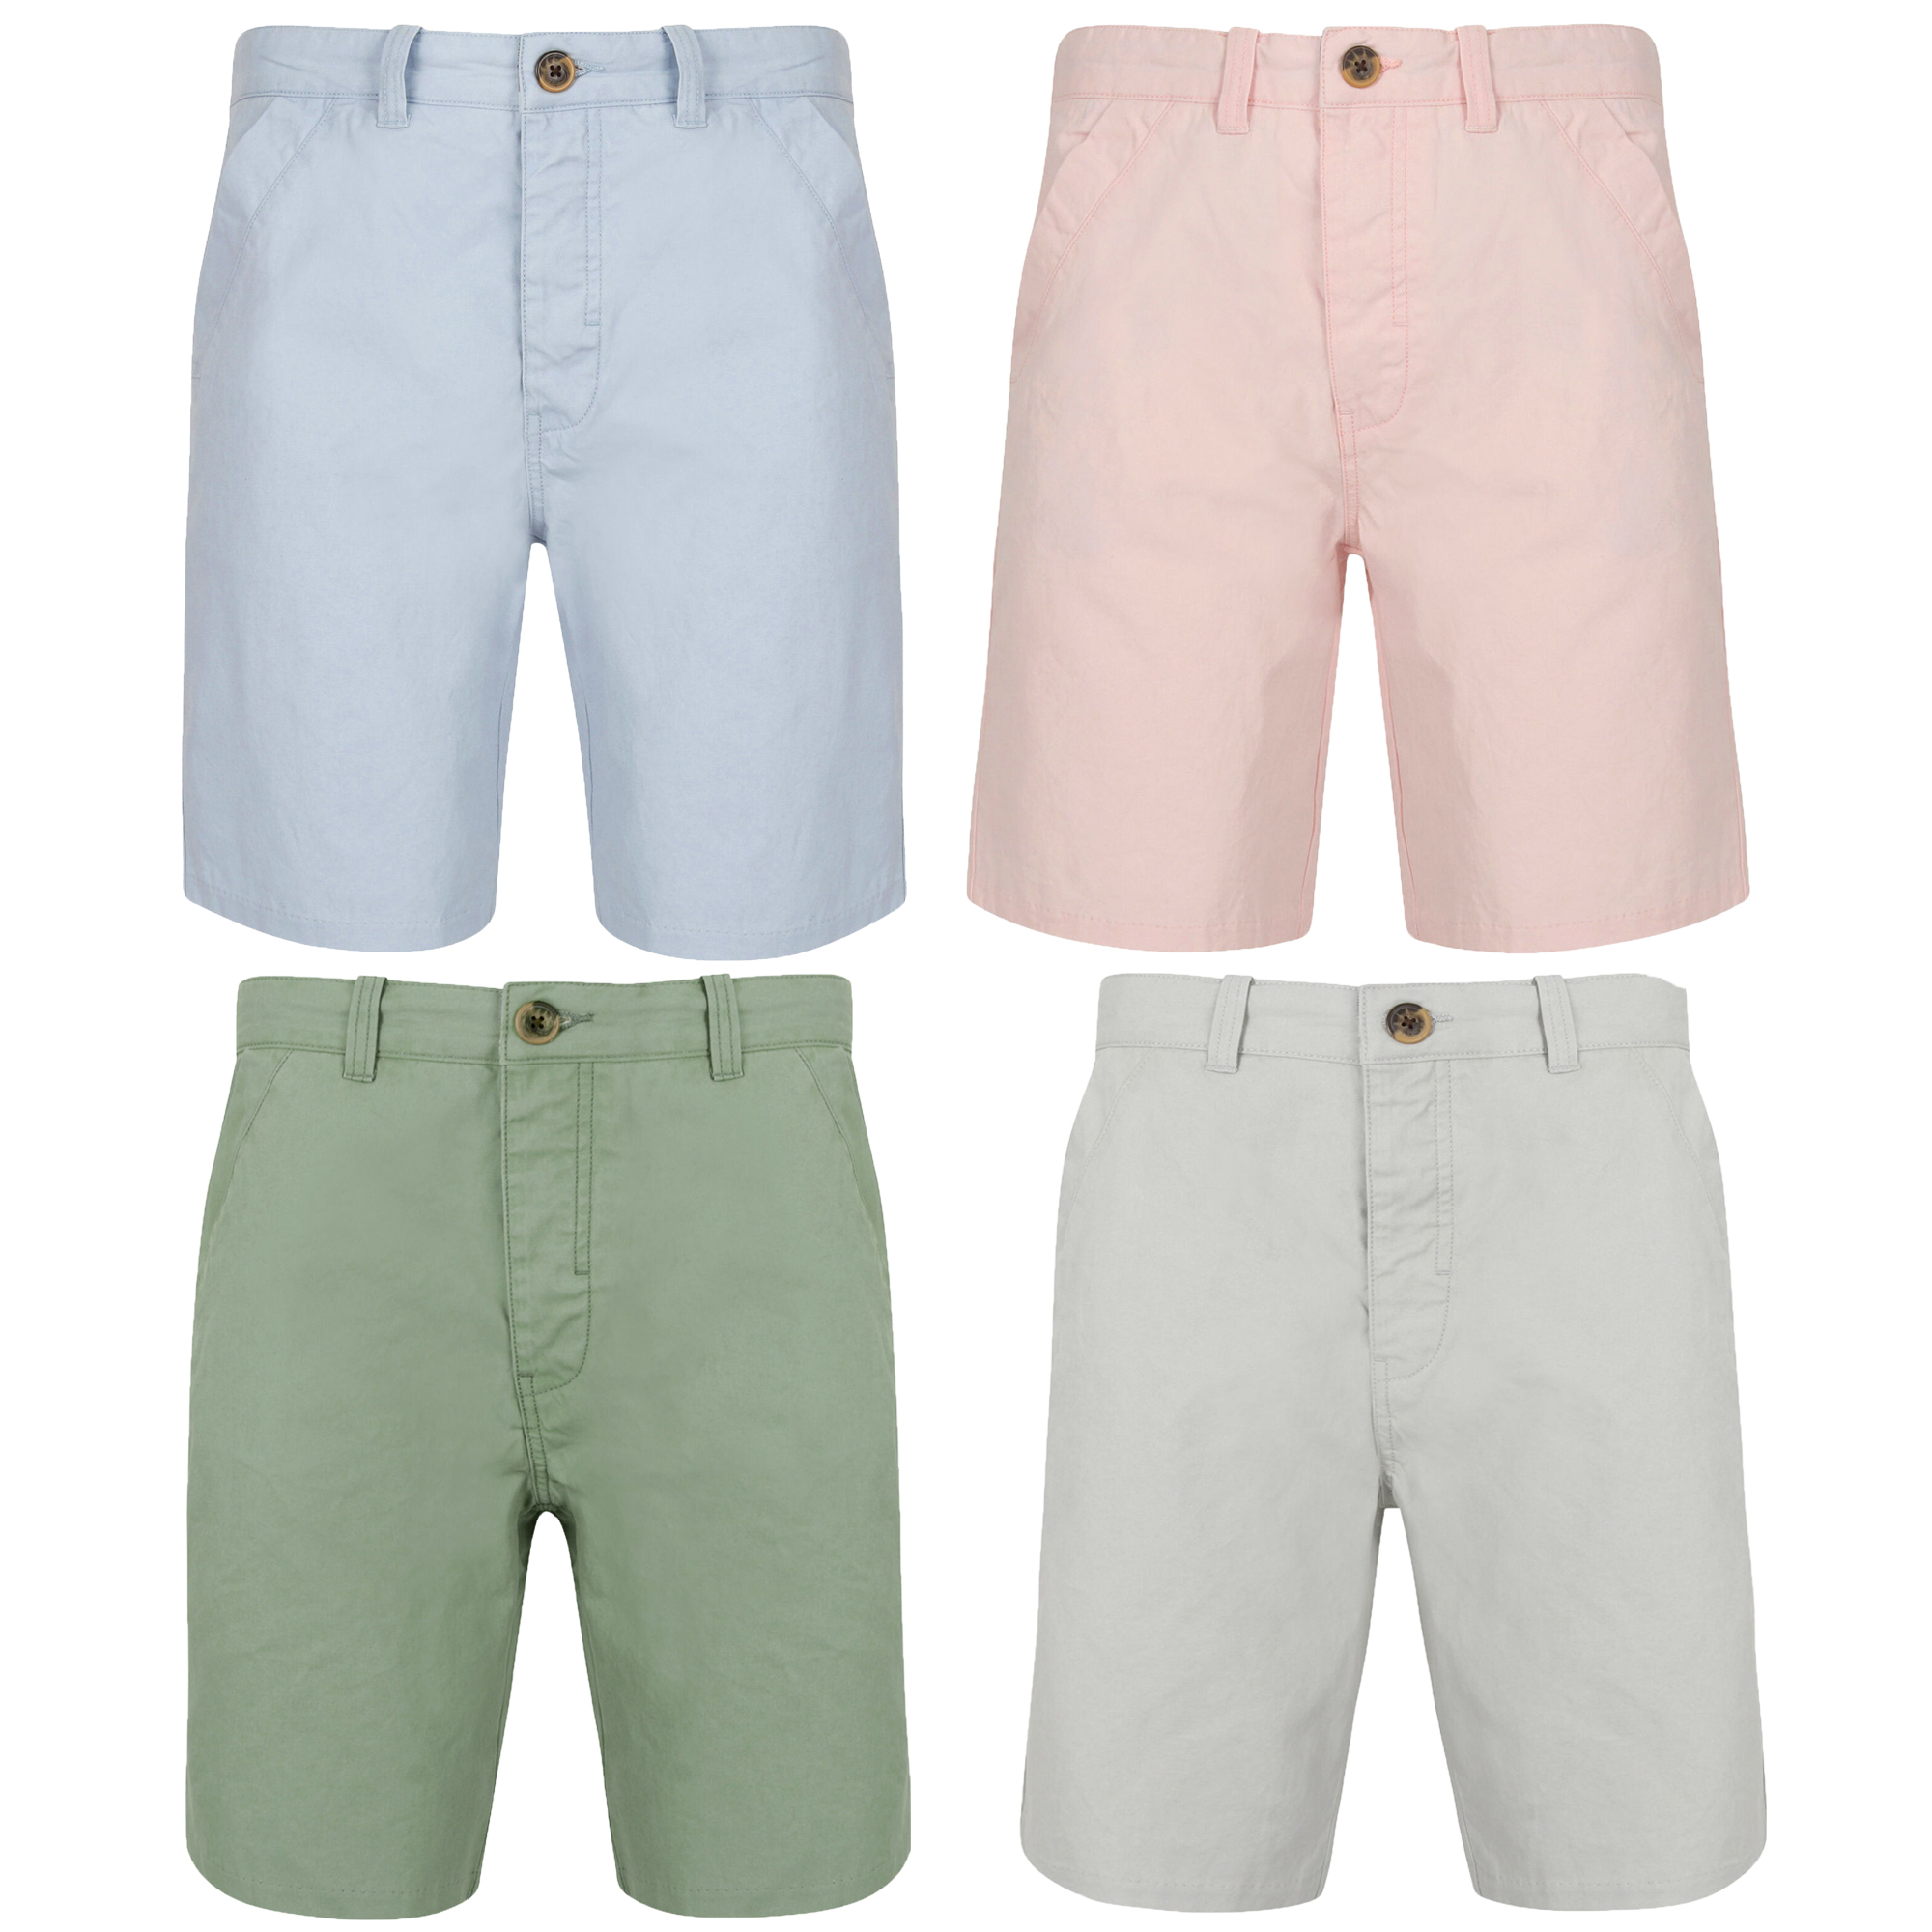 Men/'s Tokyo Laundry Chino Cotton Shorts With Belt Smart Summer Casual Jean Cargo